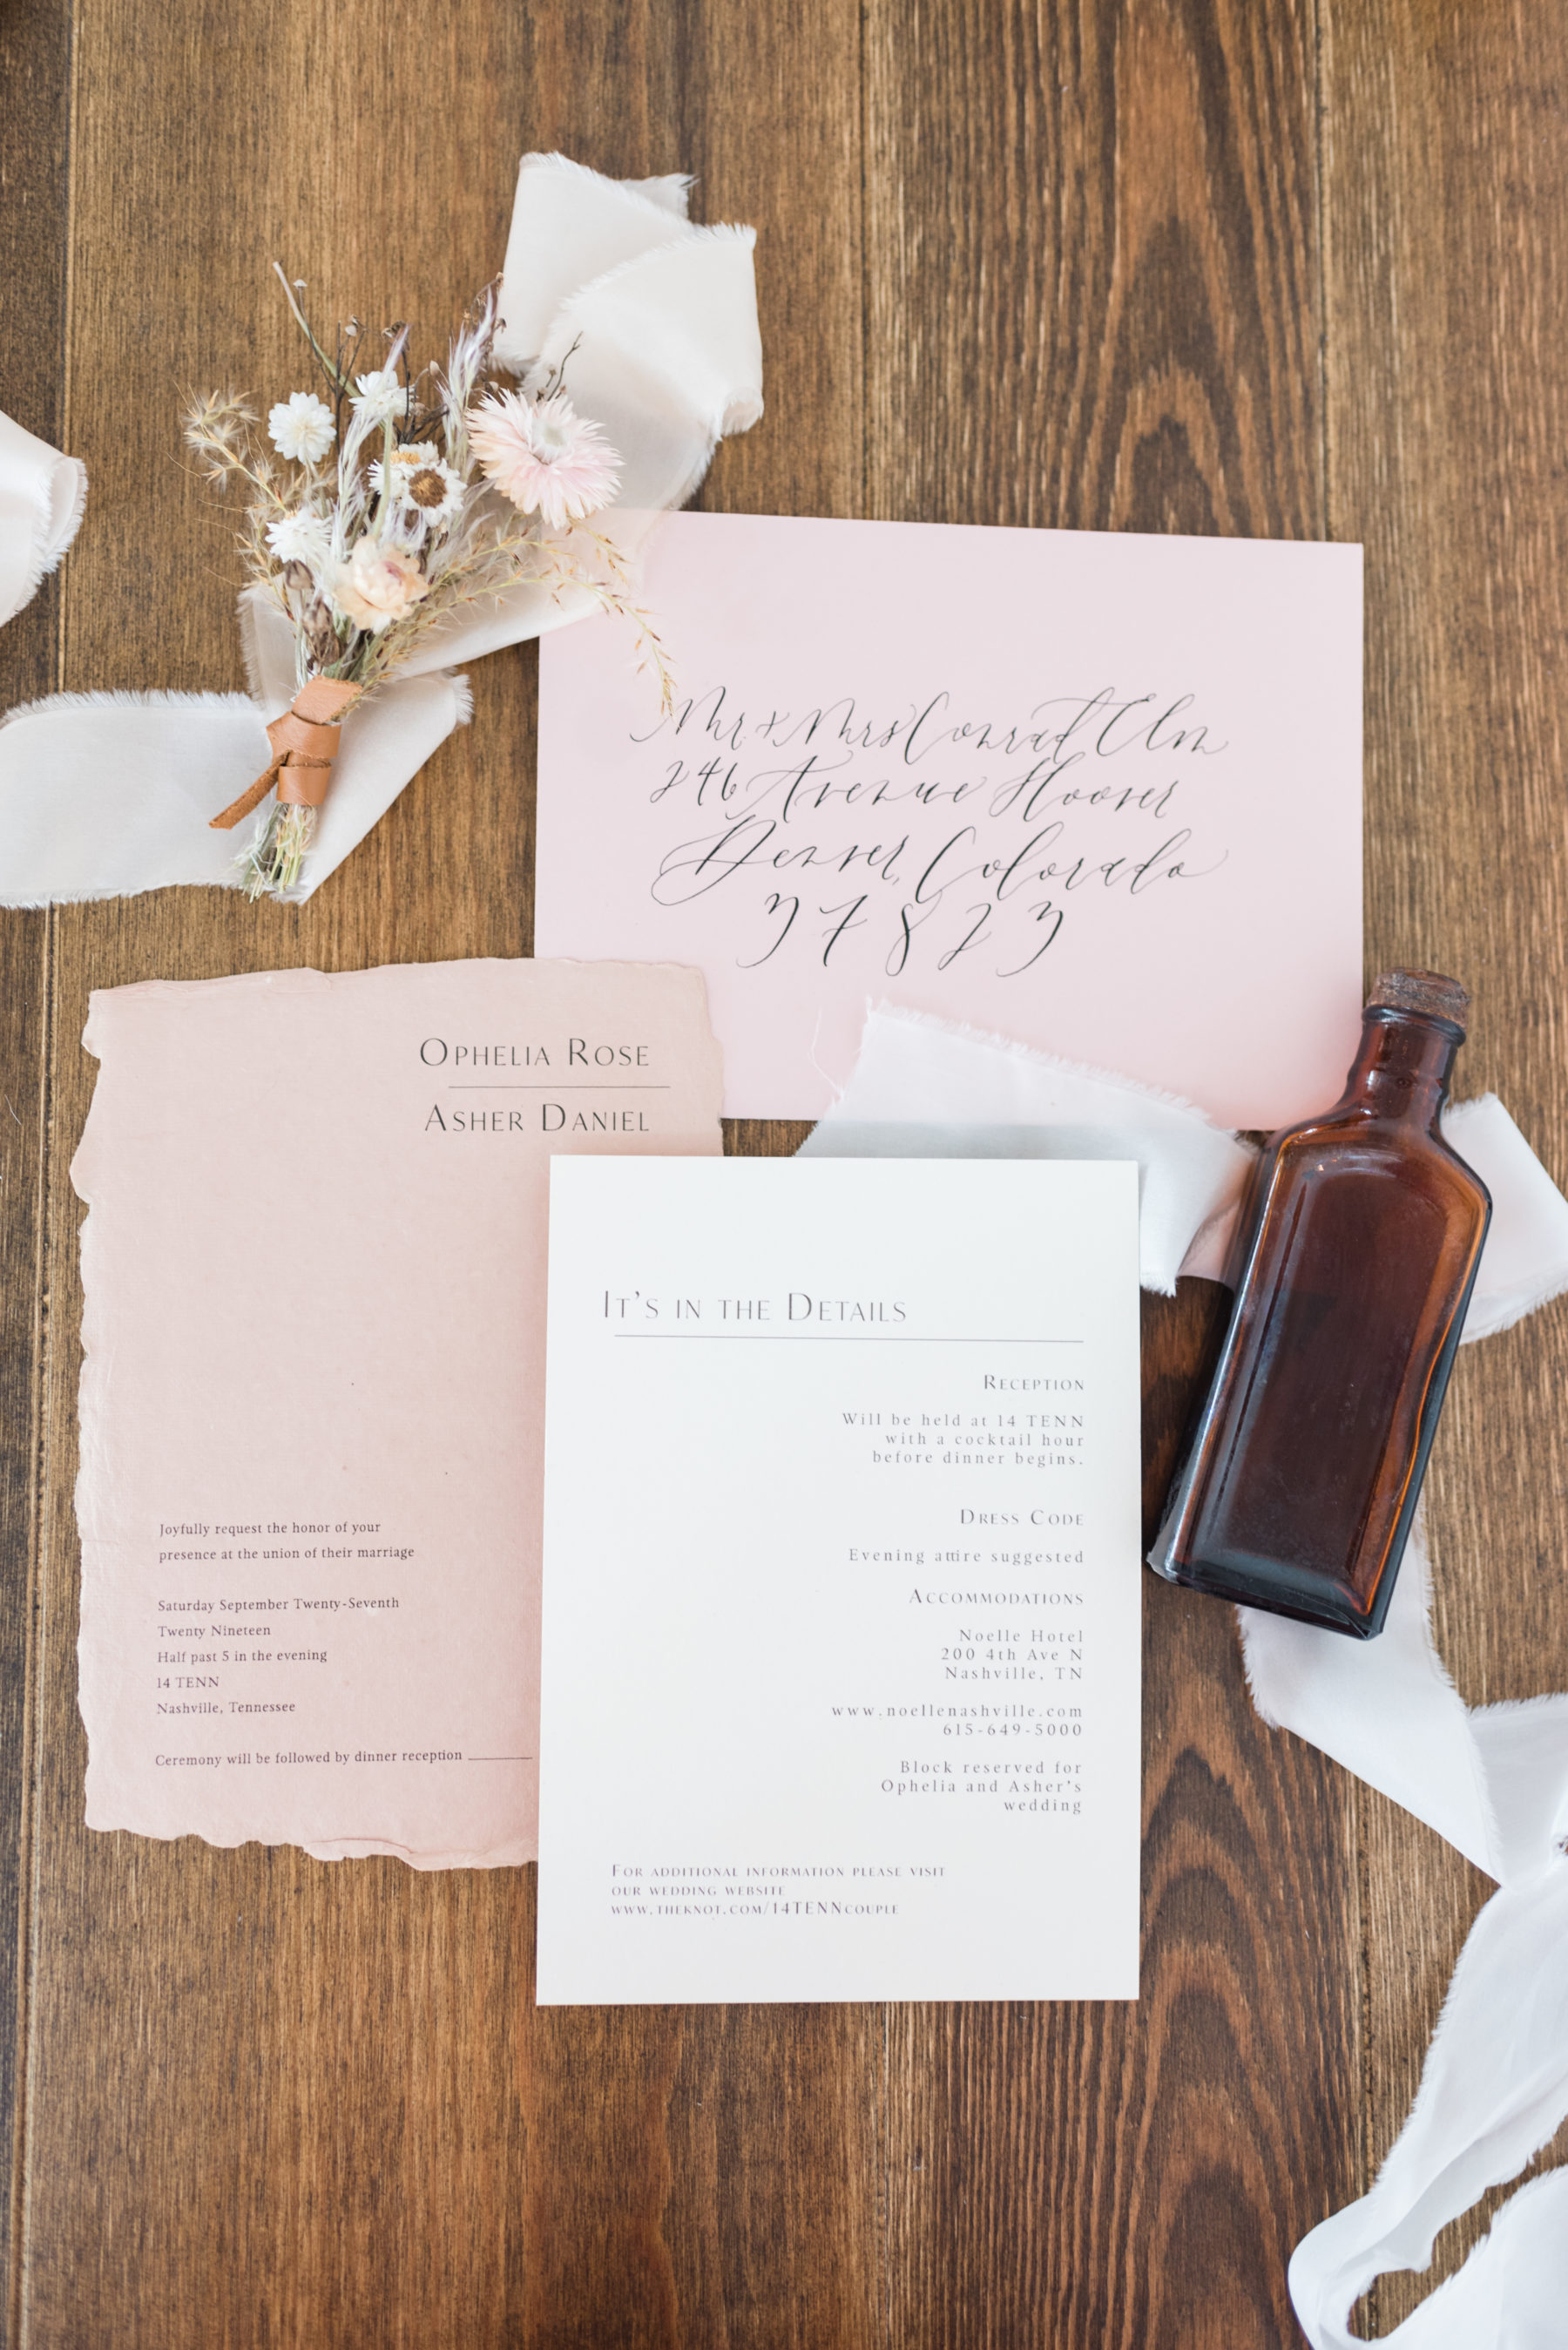 Blush Pink Wedding Invitation Suite: Organic Eco-Friendly Wedding Styled Shoot featured on Nashville Bride Guide